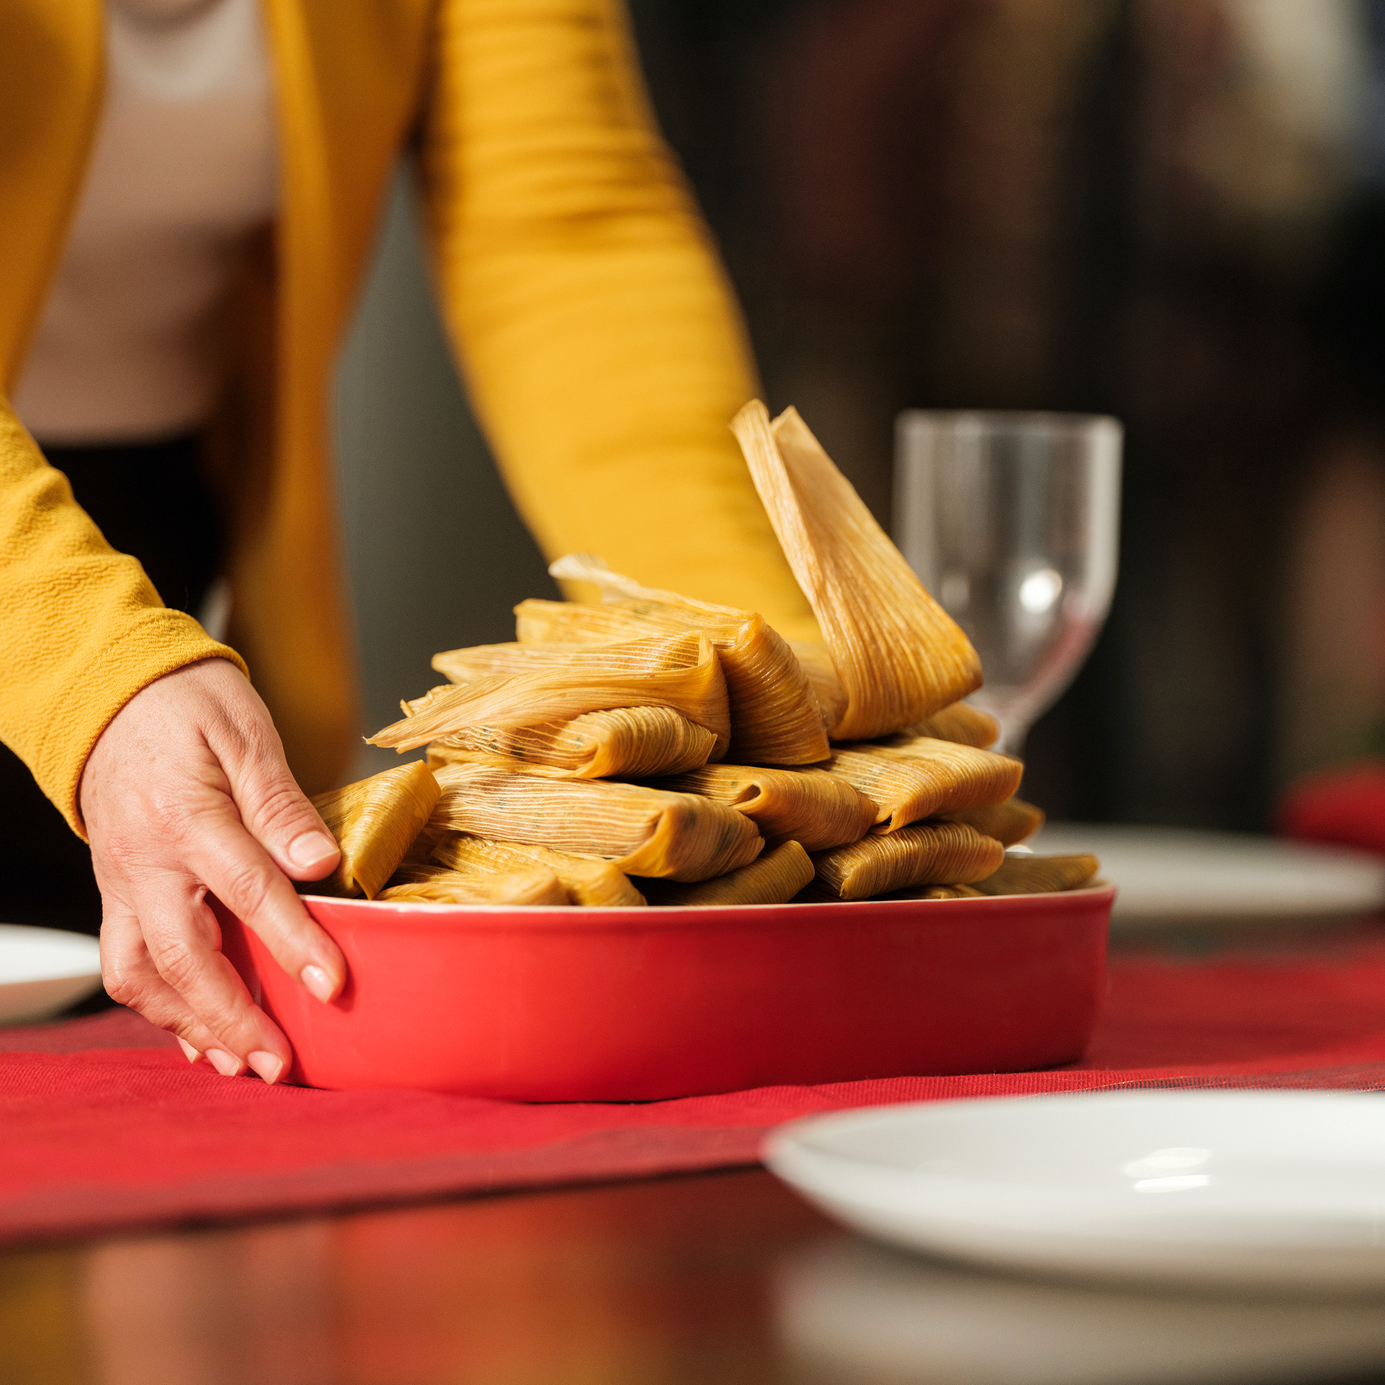 woman putting tamales on a table for Christmas